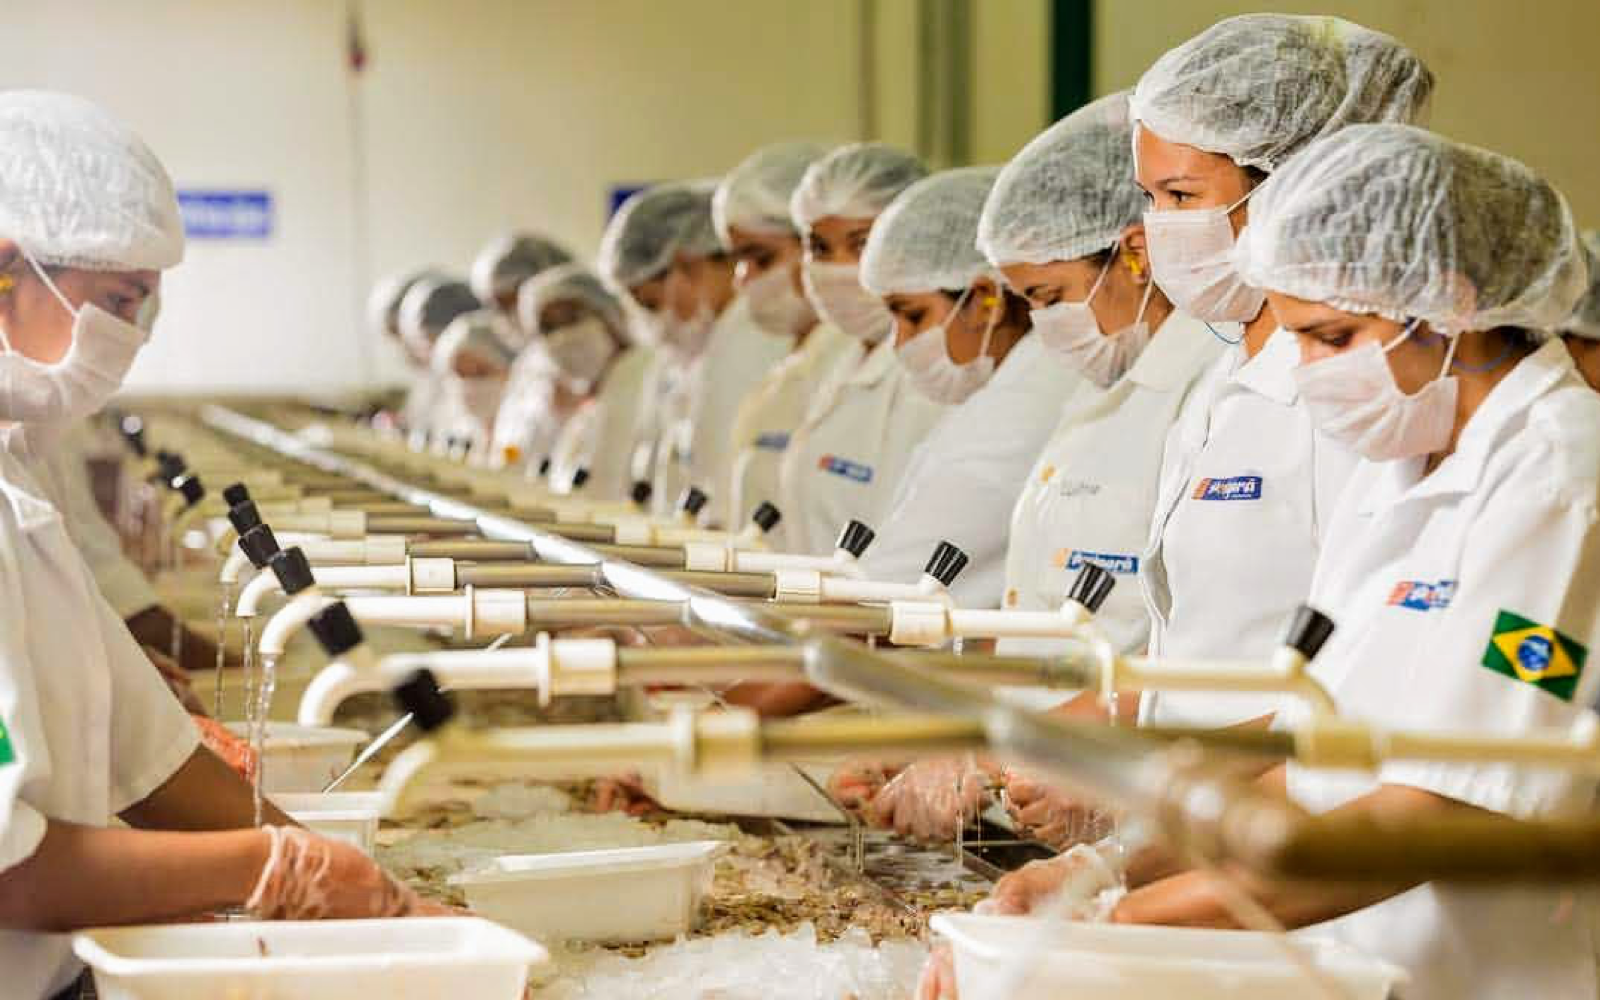 Shrimp-processing